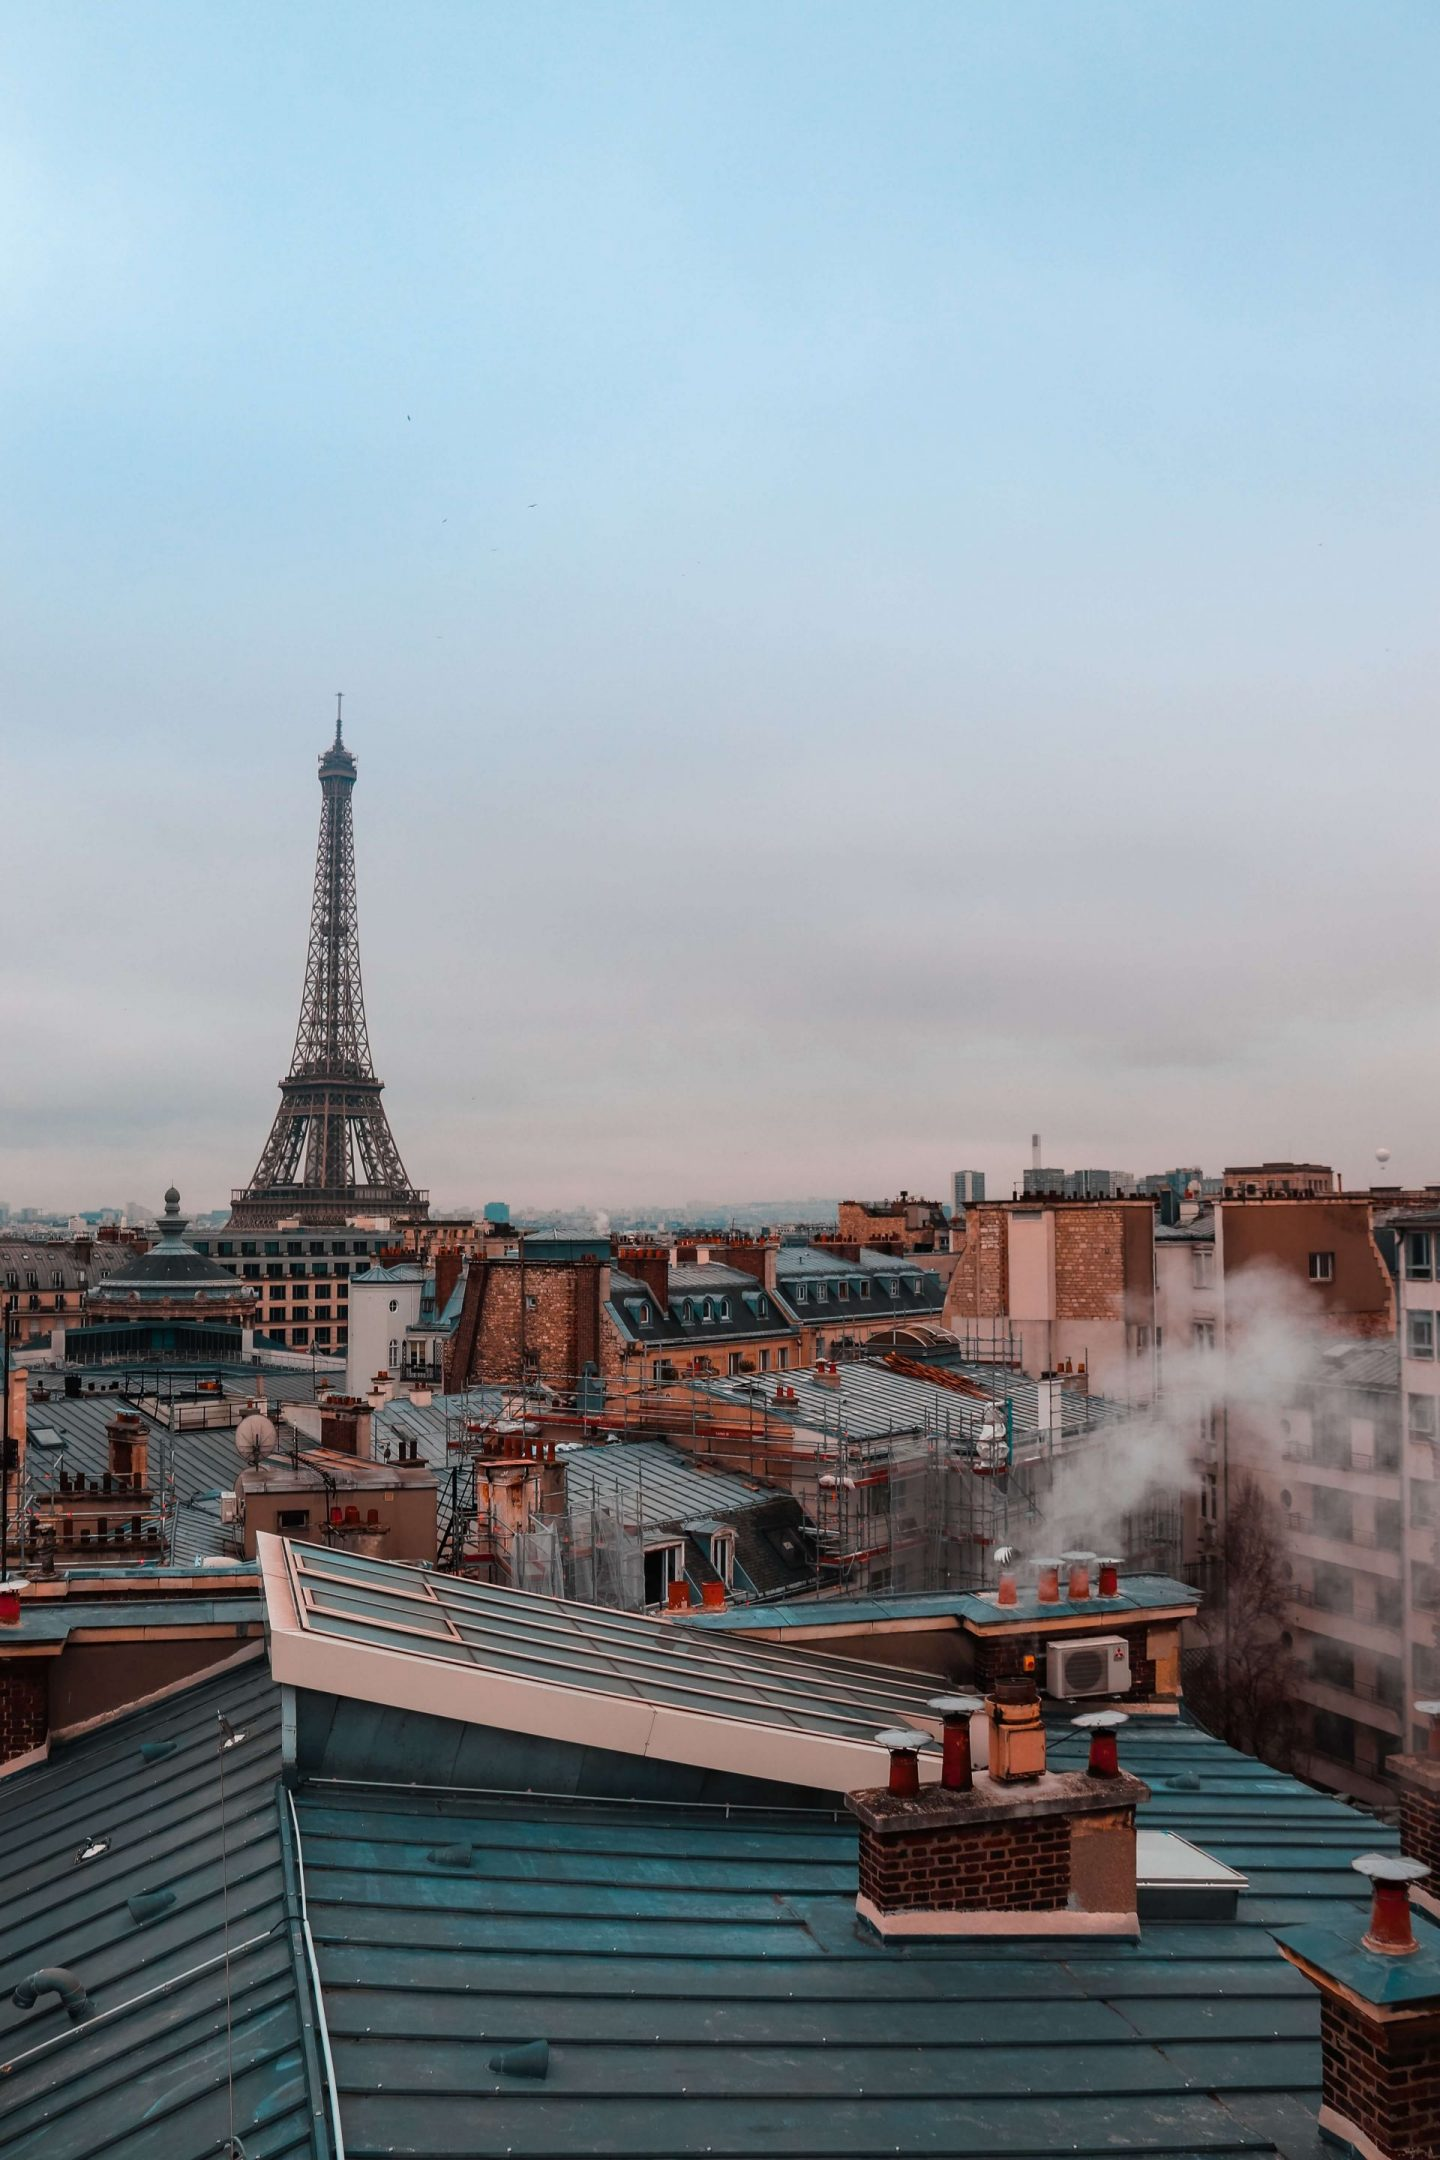 things to do in paris, bucket list experiences, city in france, view over houses to the eiffel tower, sunset